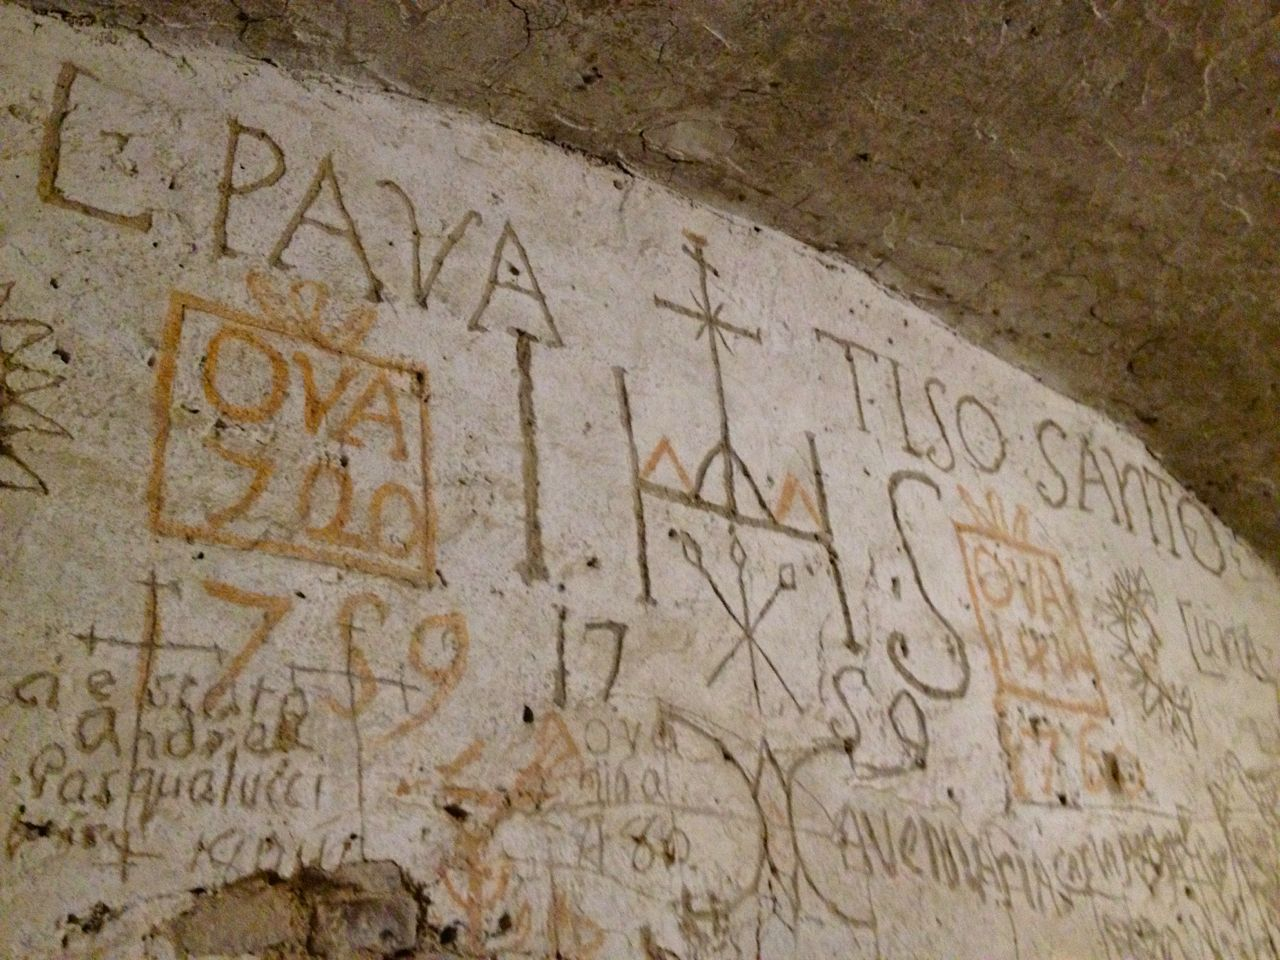 Giuseppe Andrea Lombardini's graffiti scratched into the prison cell walls includes written codes and masonic symbology